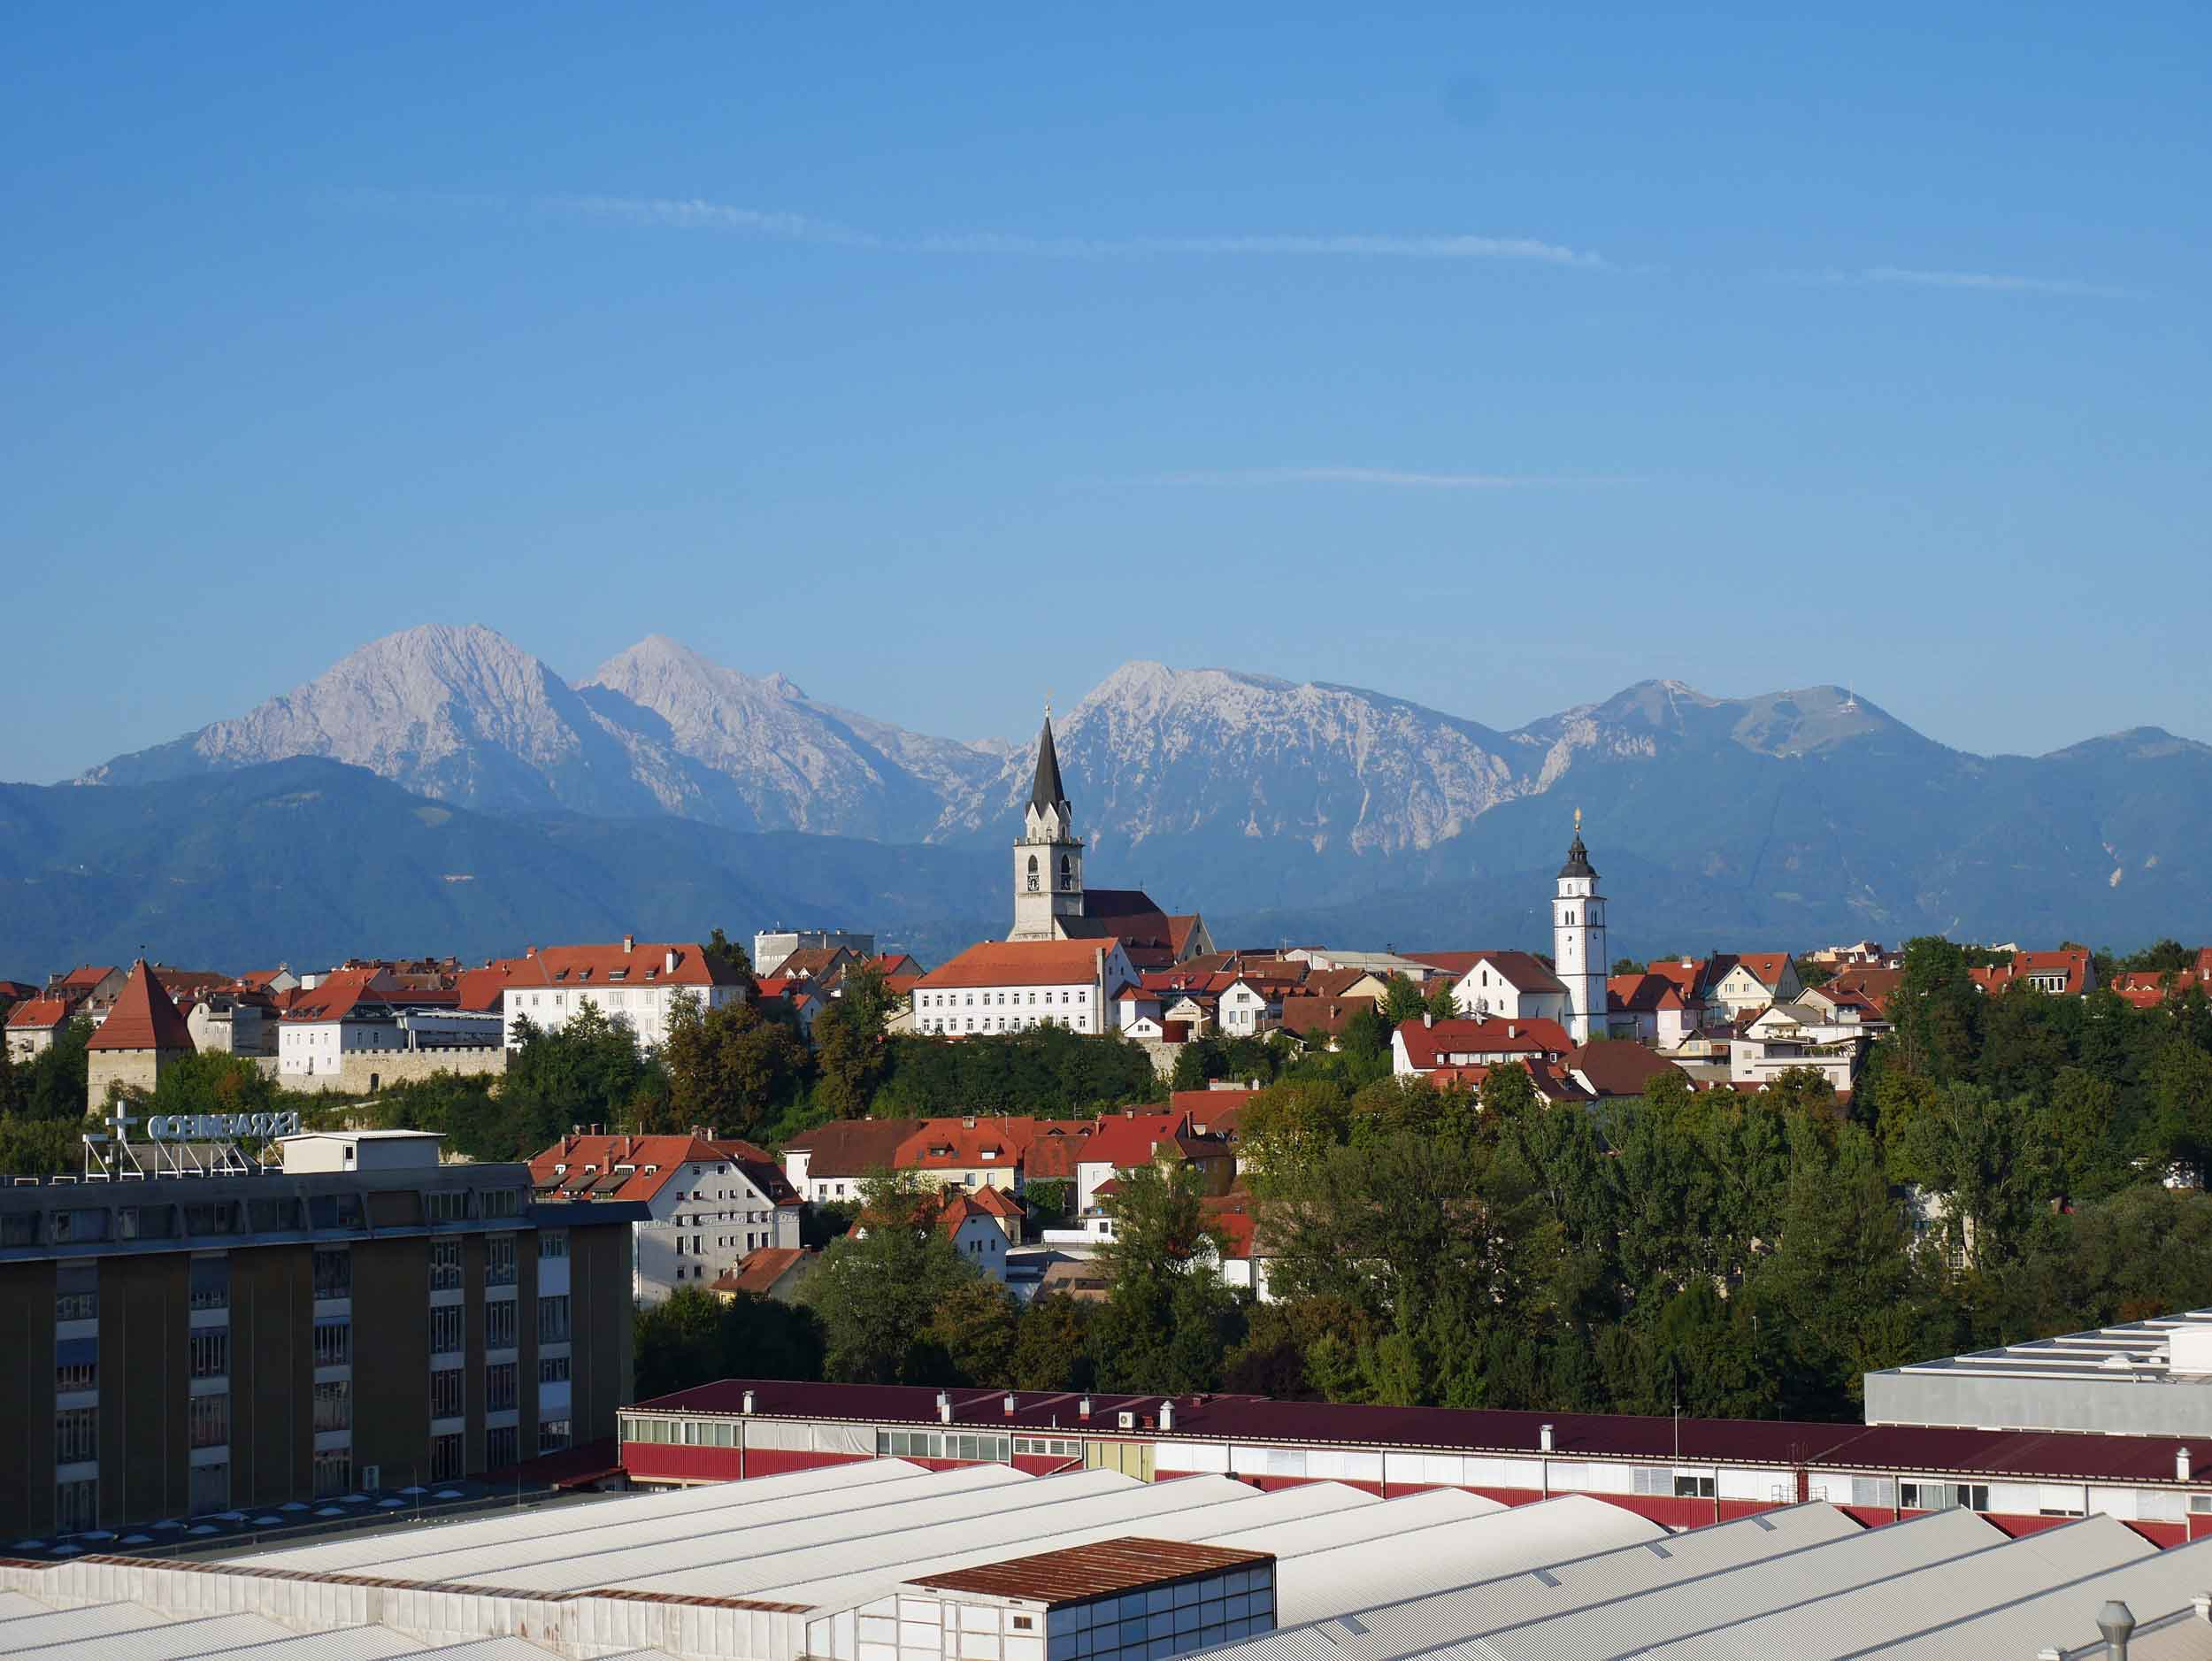 Arriving from the southern Balkans, Slovenia was a relief in both temperature and lifestyle of more traditional European villages, such as Kranj, our fist stop (Aug 18).